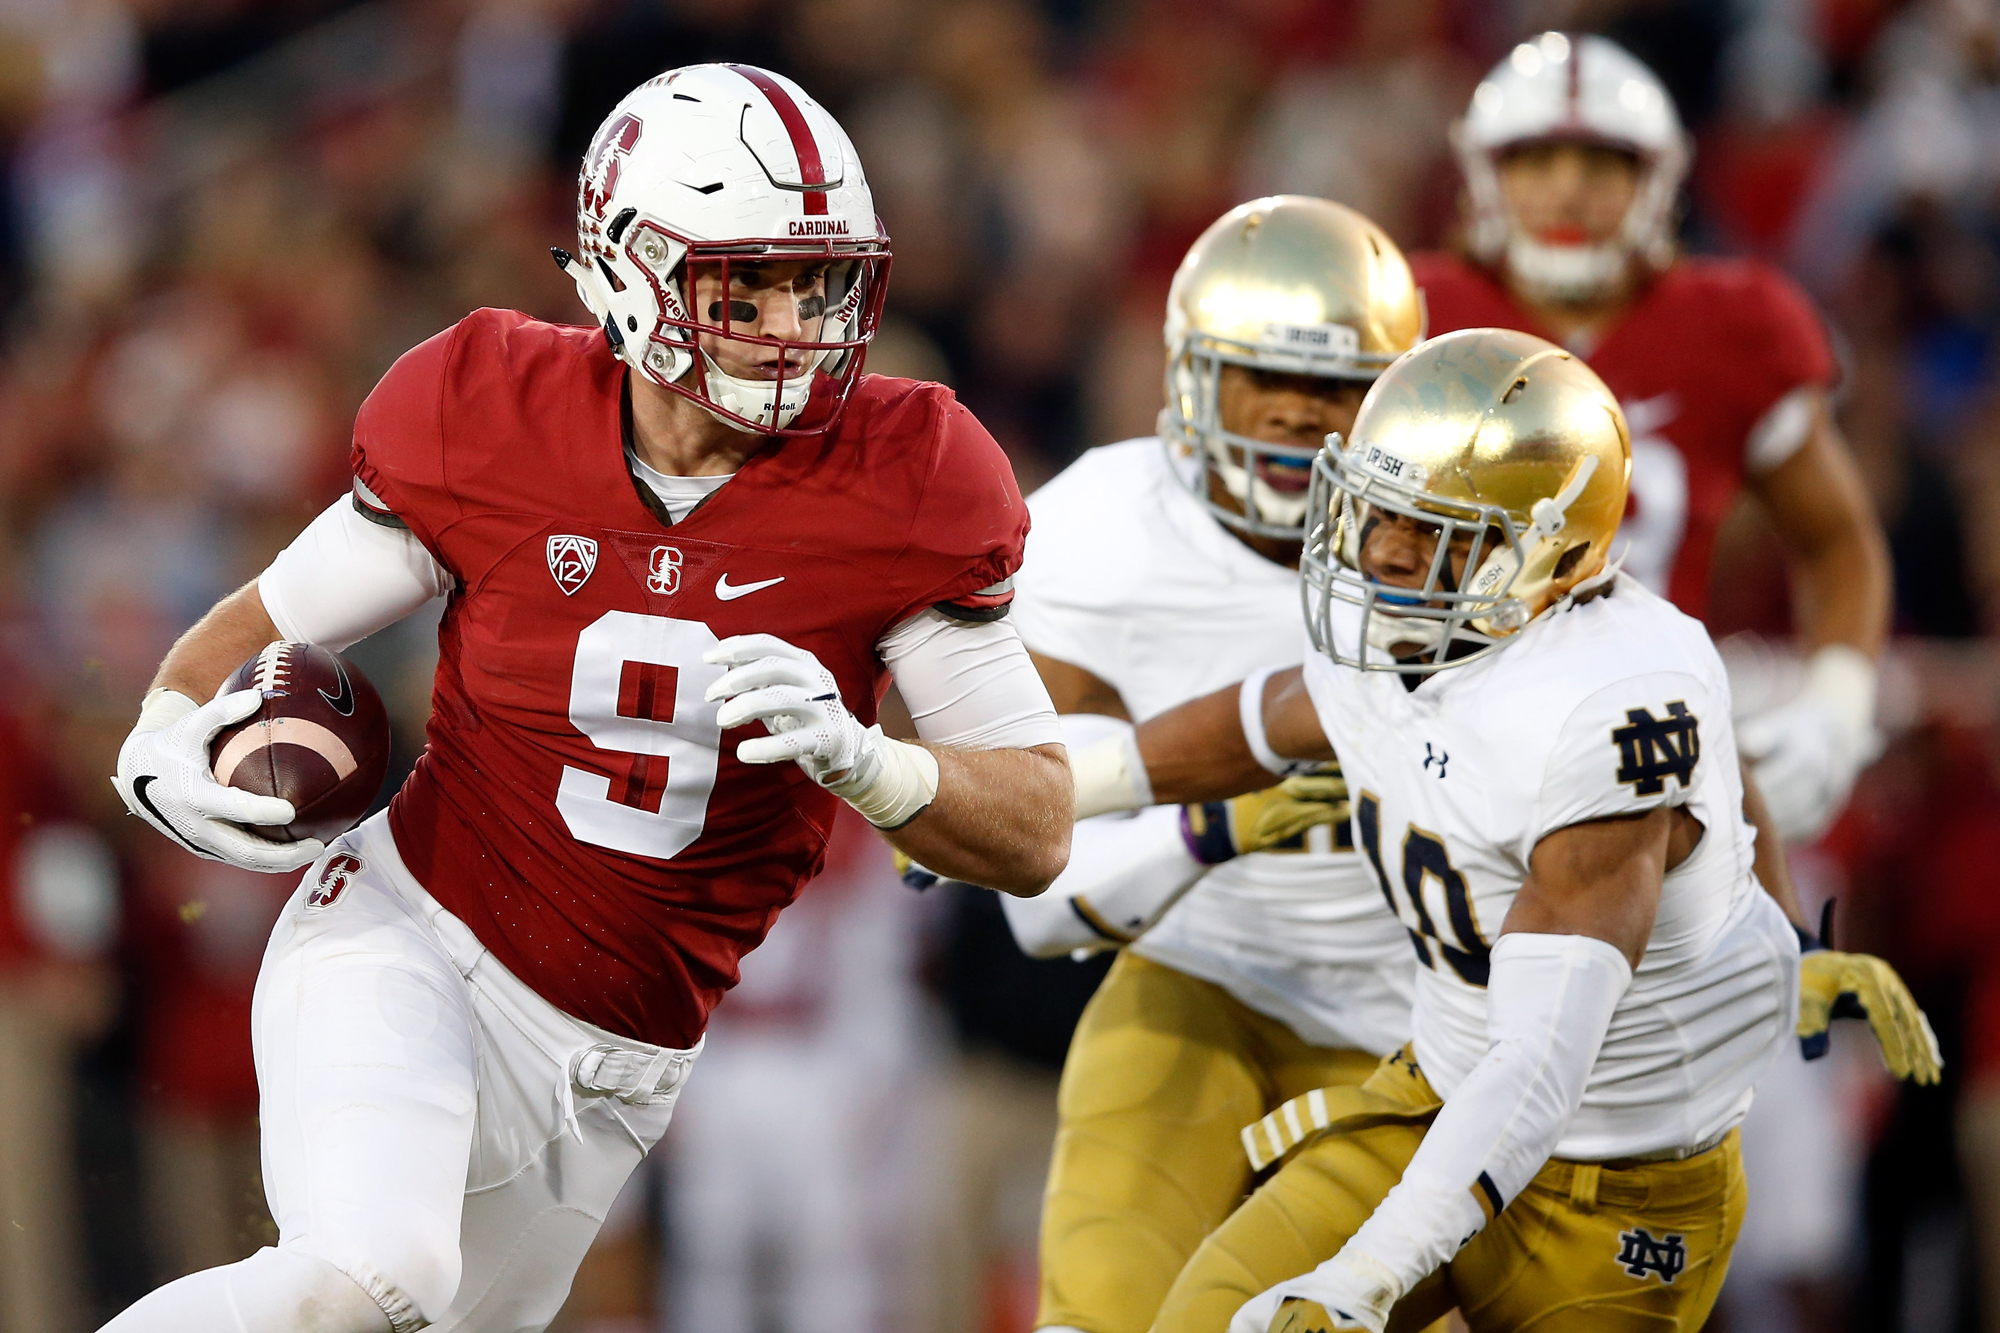 Dalton Schultz #9 of the Stanford Cardinal makes a reception during their game against the Notre Dame Fighting Irish at Stanford Stadium on November 28, 2015 in Palo Alto, California.